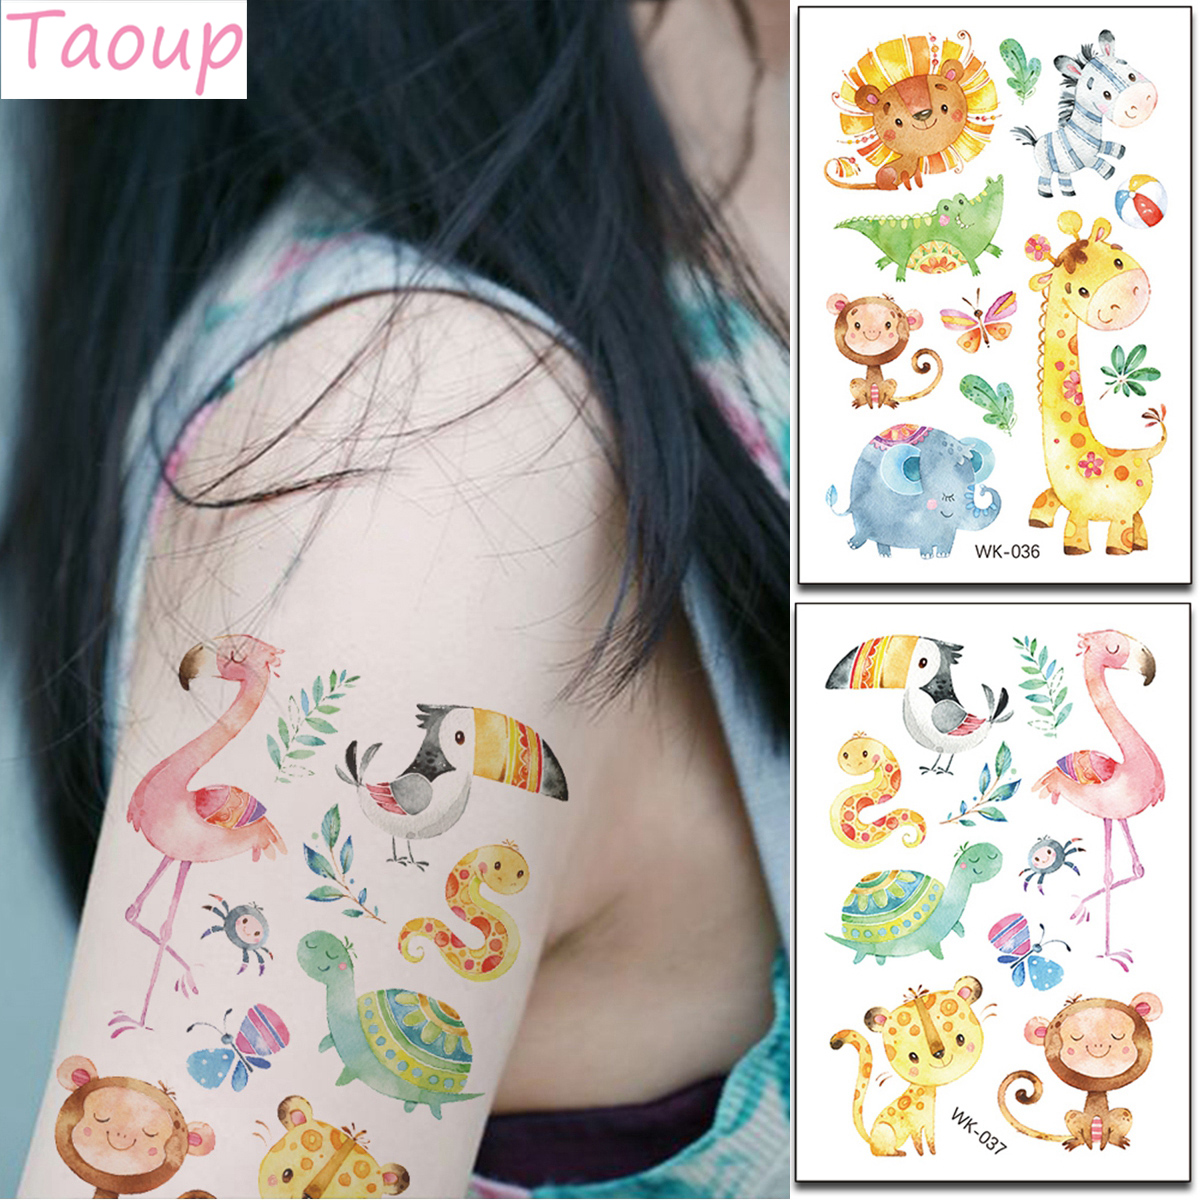 Taoup Cartoon Animals Tiger Pink Flamingo Stickers Flamingo Decor Favors Safari Jungle Party Supplies Baby Shower Decor Bithday